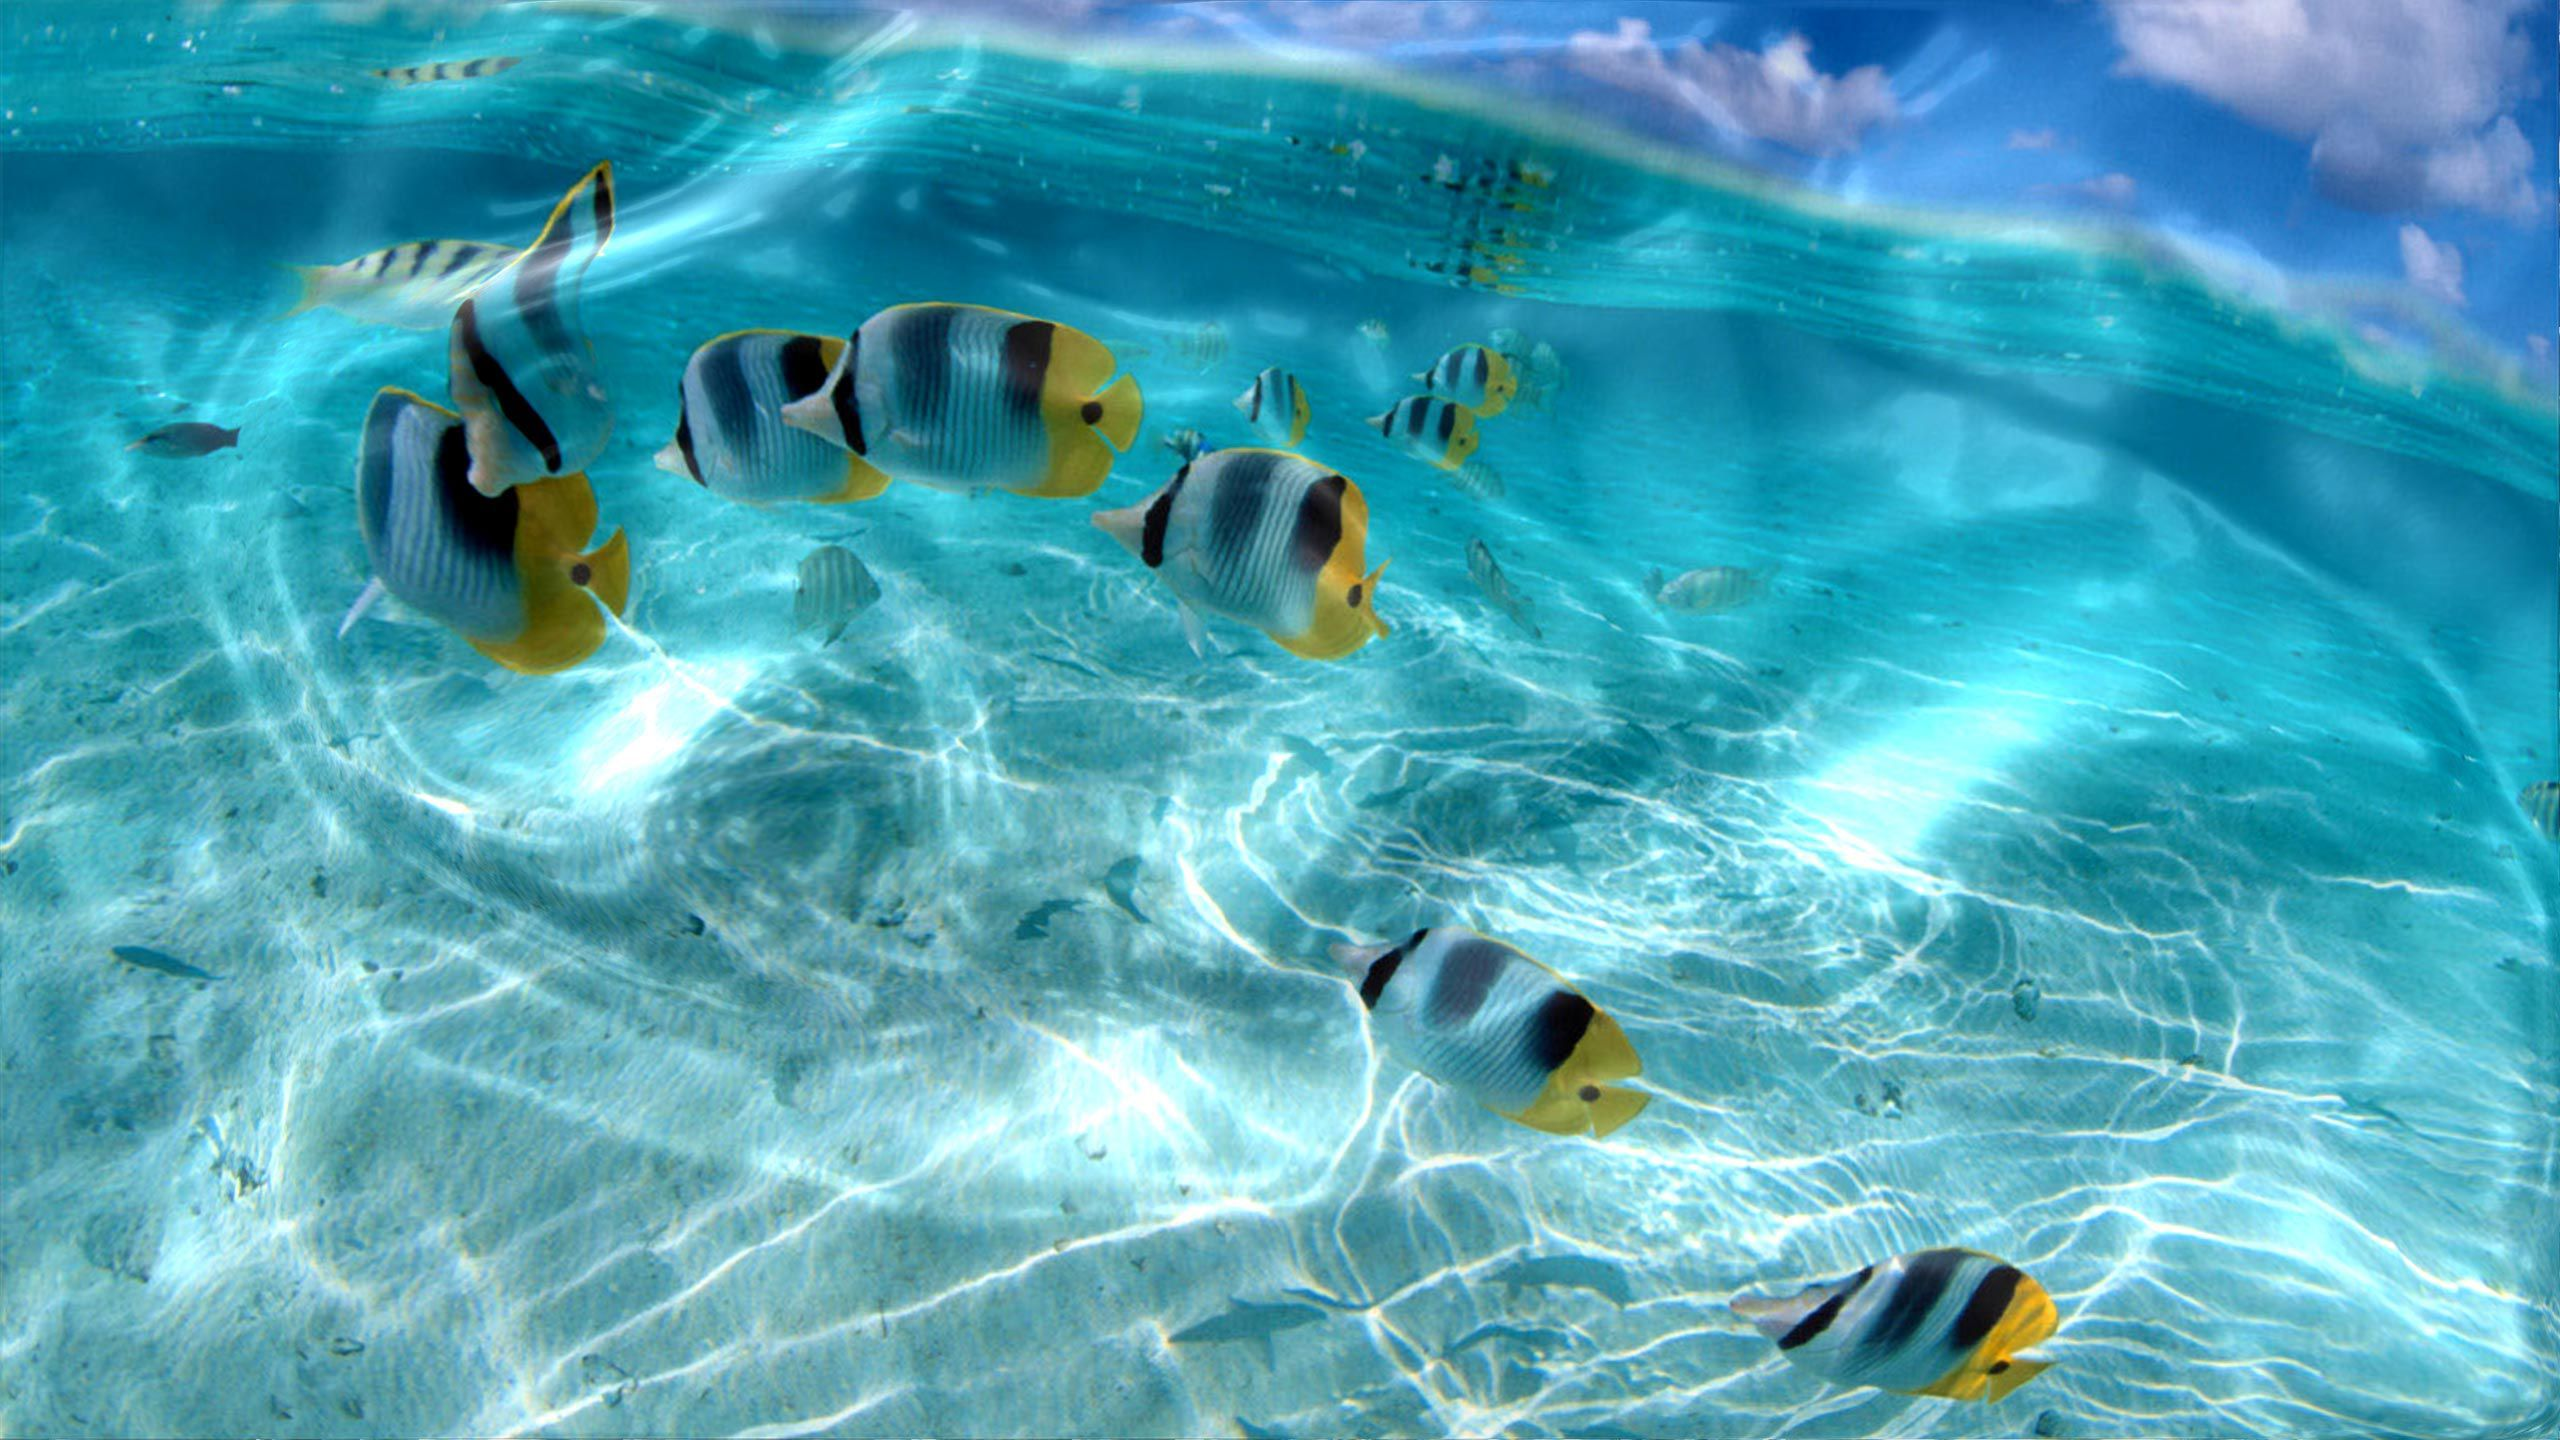 pc wallpaper 1920a—1200 live fish wallpaper for desktop download 36 wallpapers